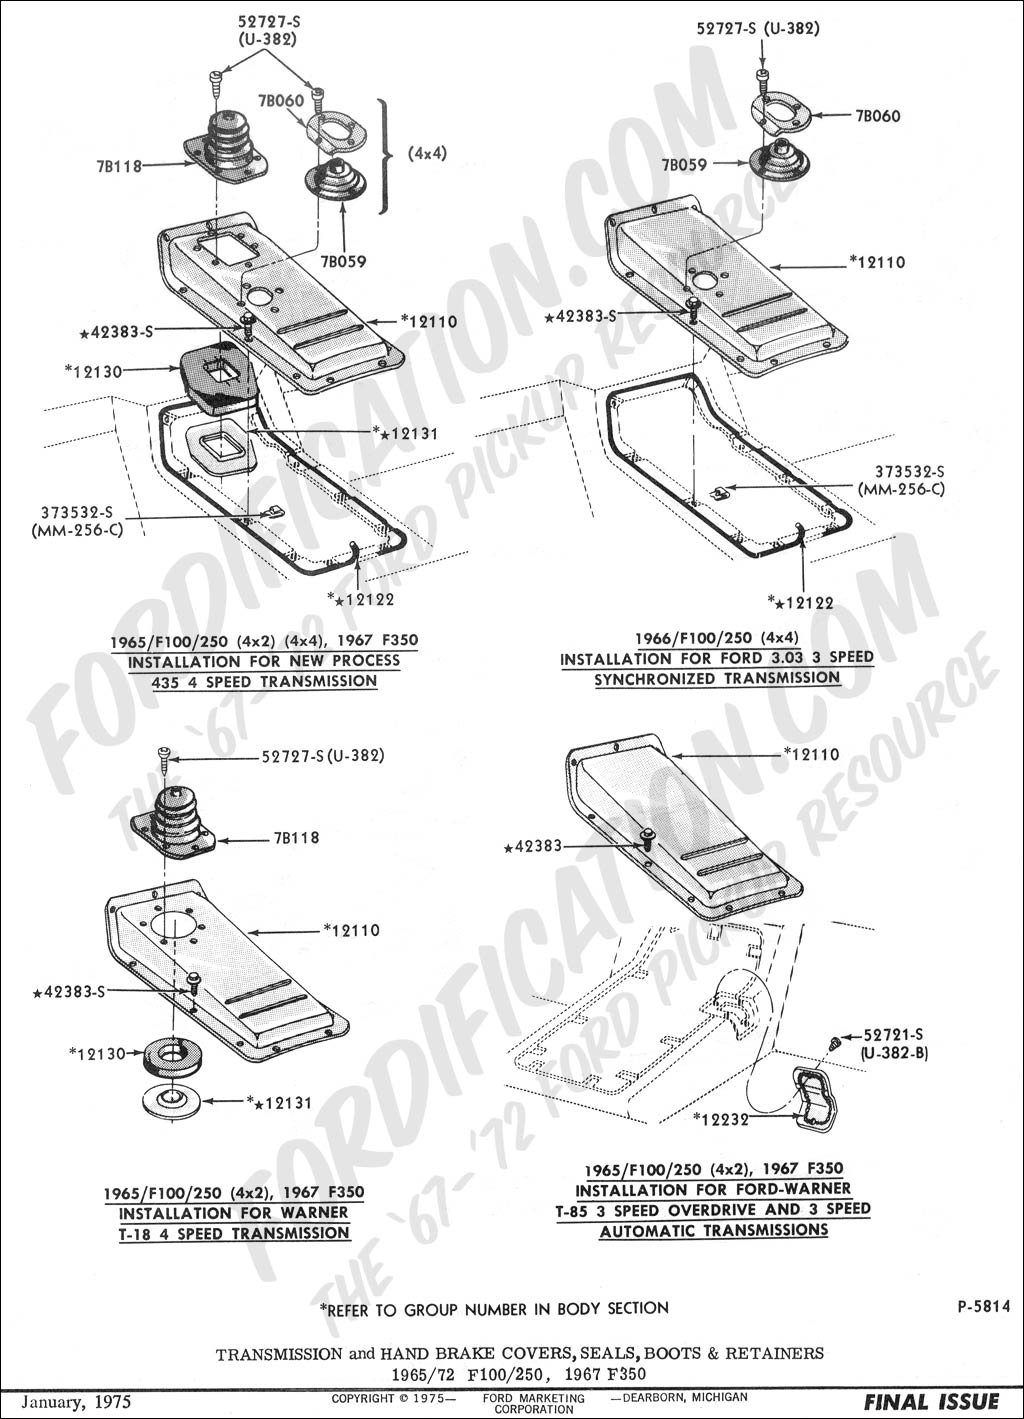 ford standard transmission diagrams pontiac g5 transmission standard diagram  1996 isuzu transmission standard diagram ford c6